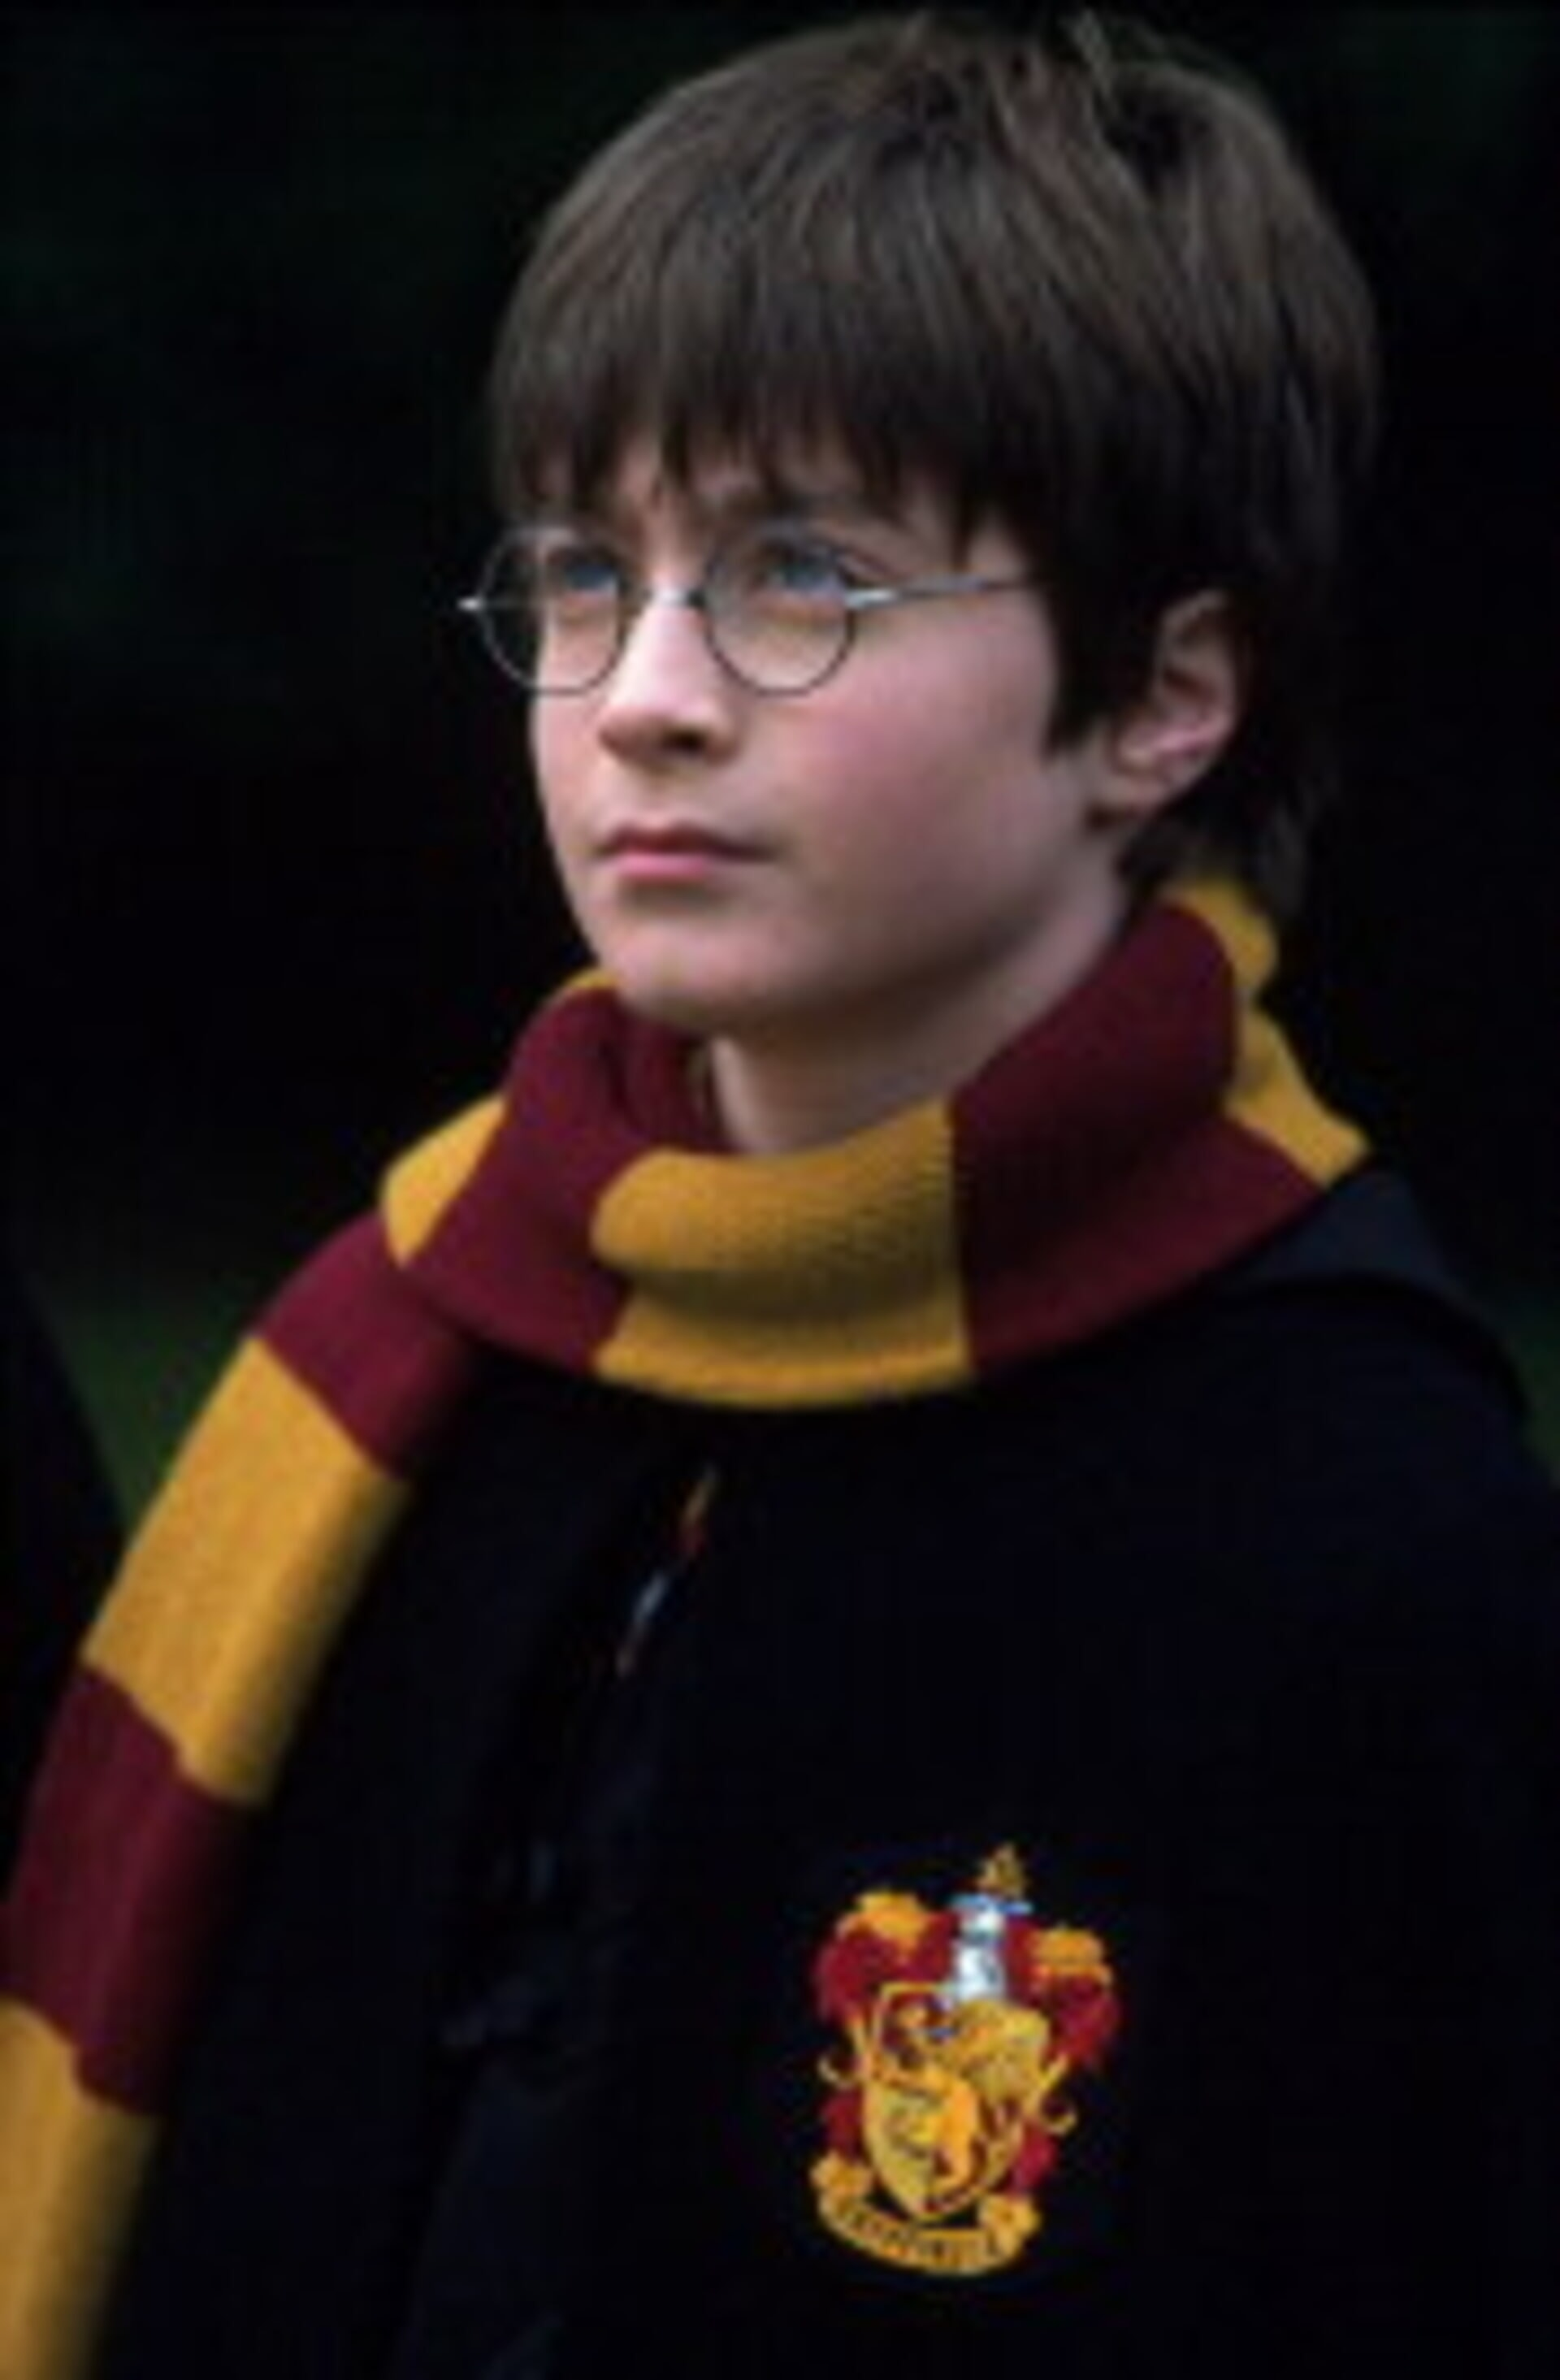 Harry Potter and the Sorcerer's Stone - Image 7